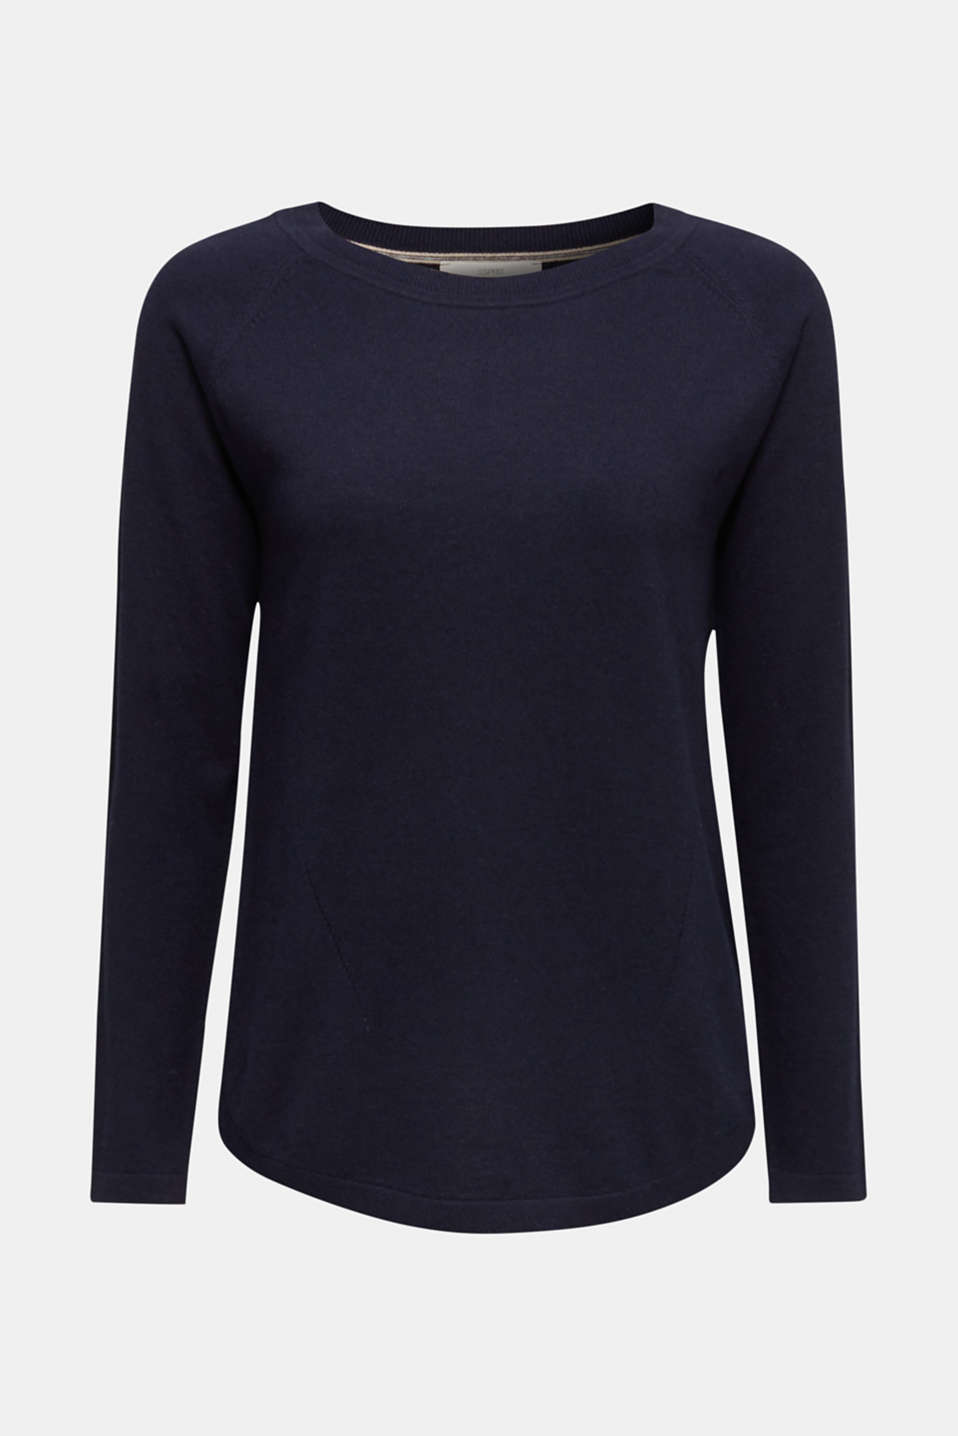 With linen: Jumper with open-work patterned details, NAVY, detail image number 5